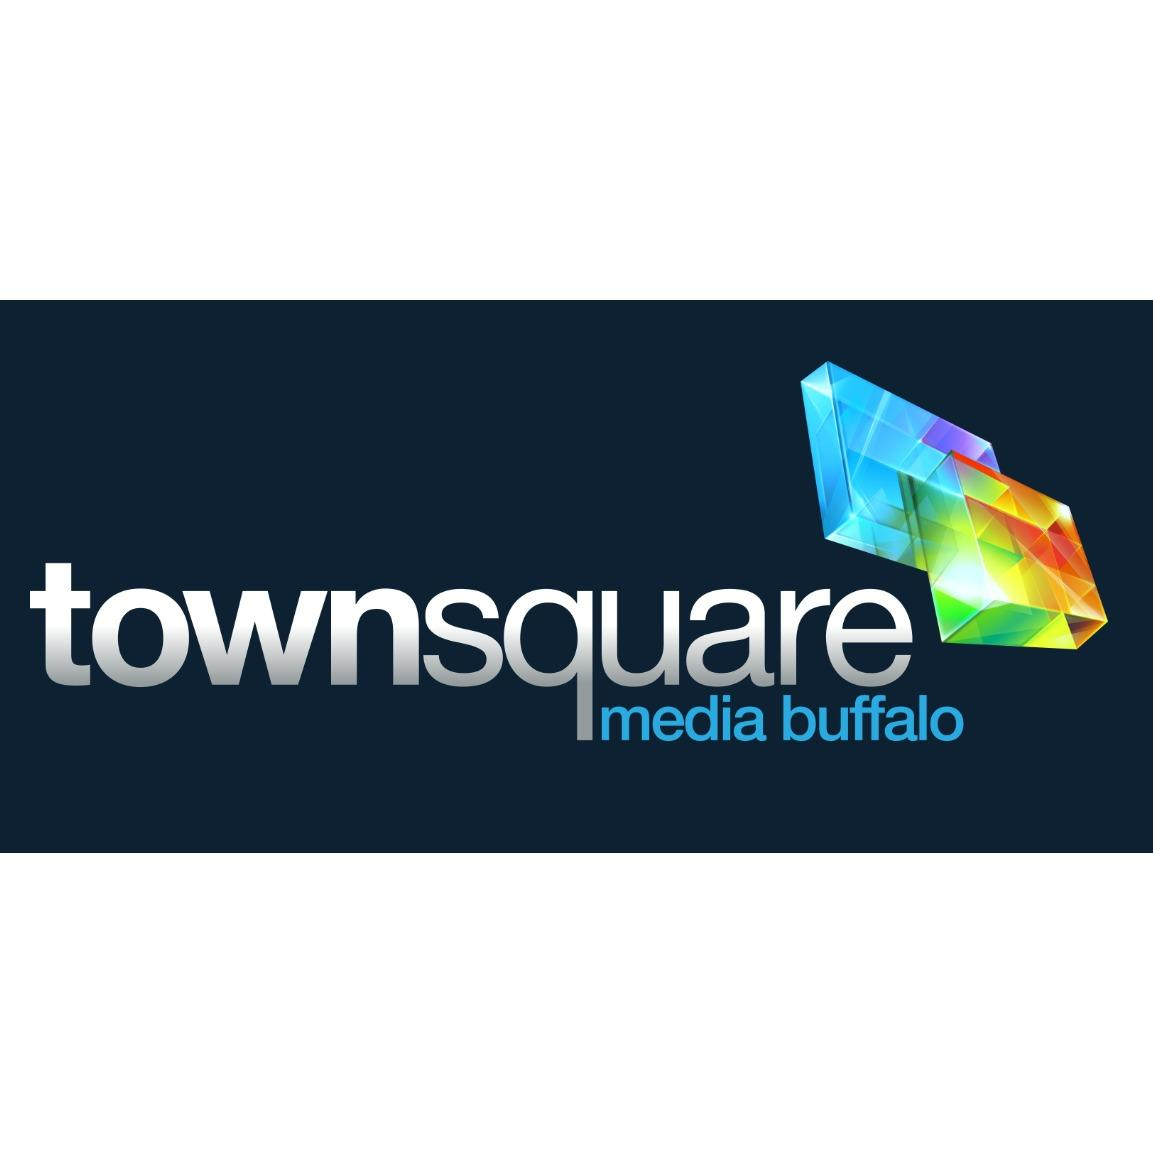 Townsquare Media Buffalo